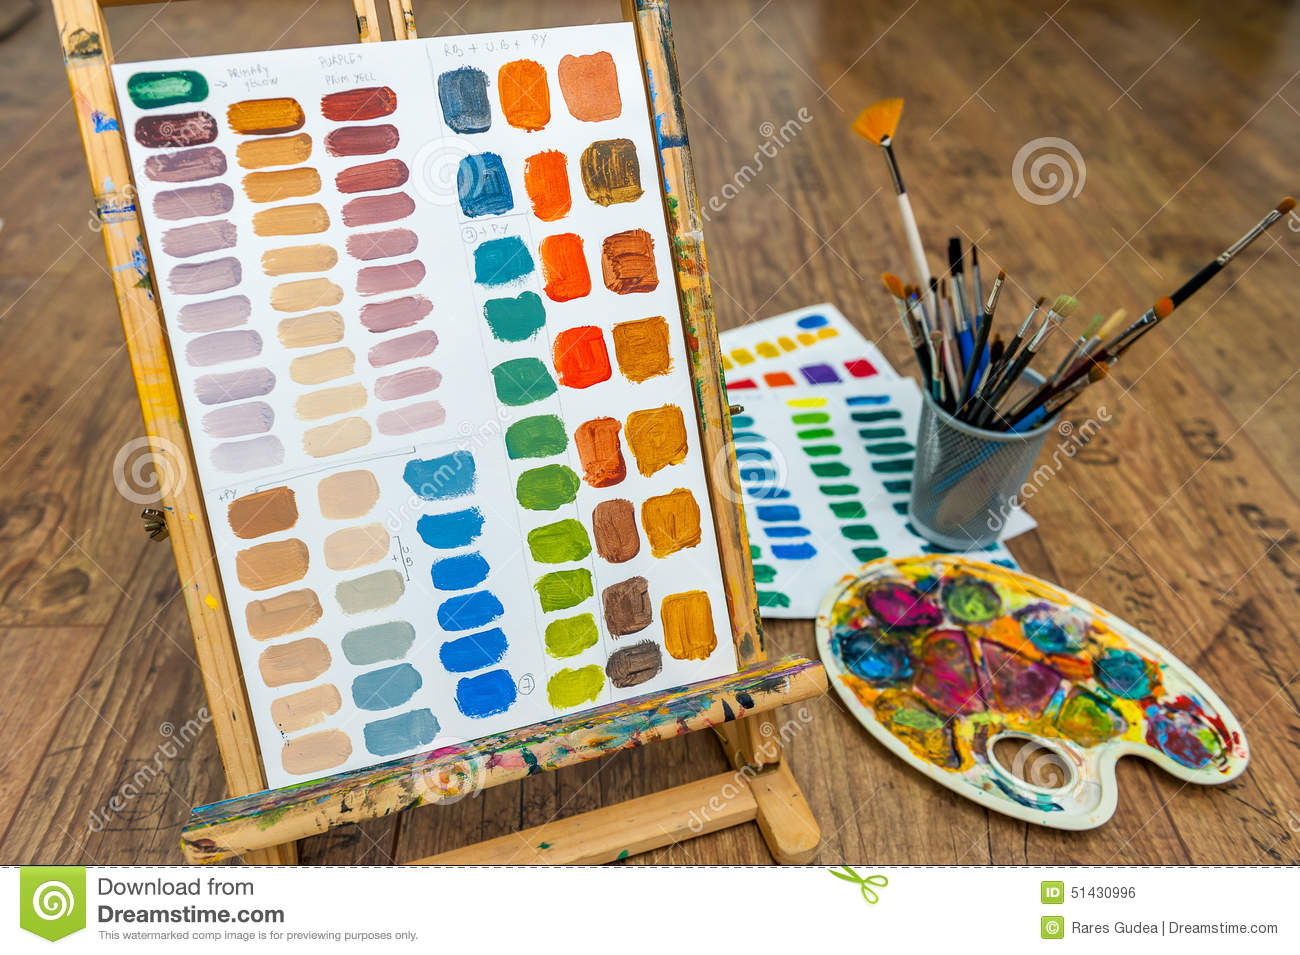 painting color exercise mixing colors with easel brushes and pallete stock illustration image. Black Bedroom Furniture Sets. Home Design Ideas